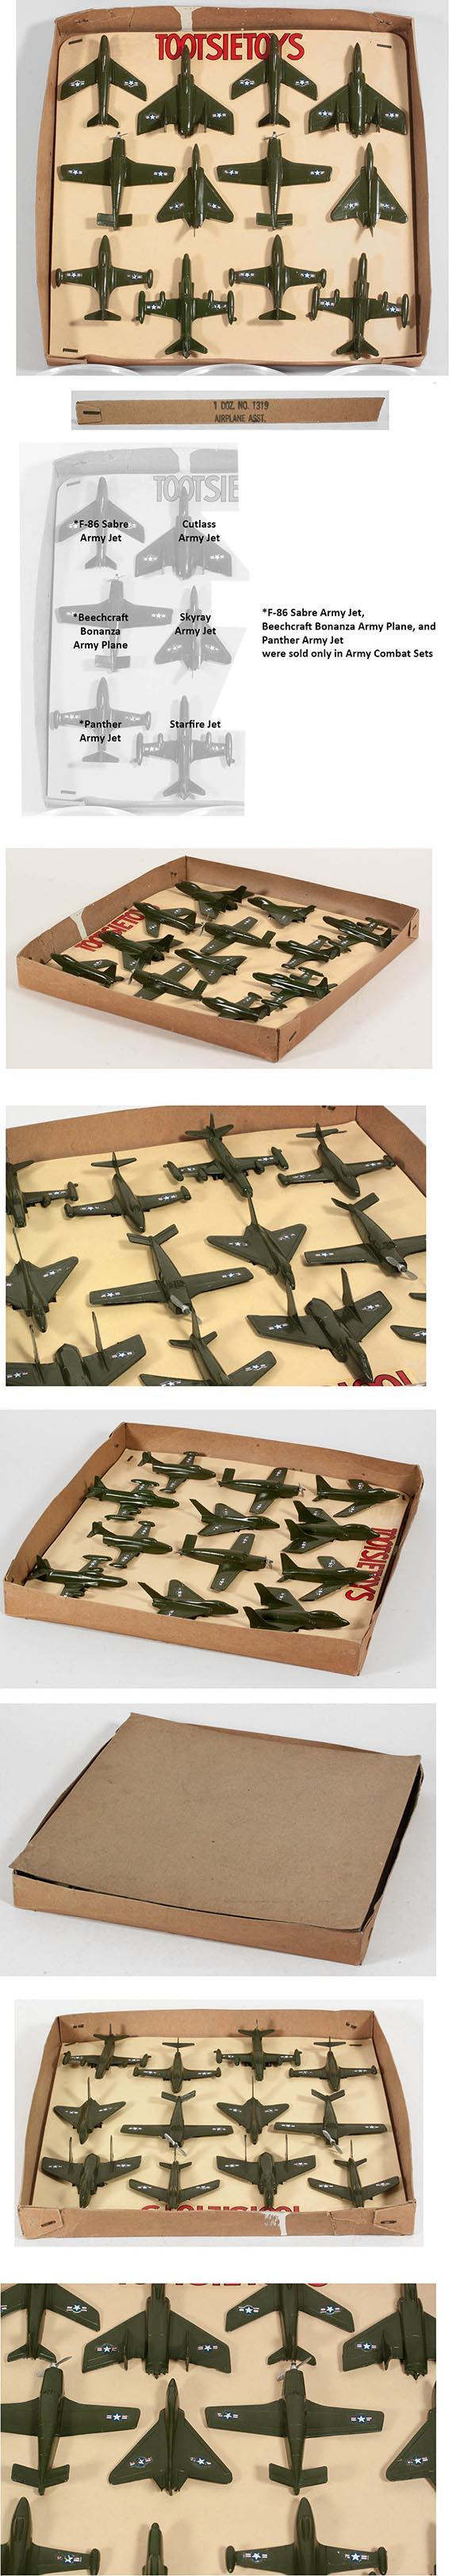 1958 Tootsietoys Sales Sample, No.1319 Airplane Assortment Set in Orig. Box